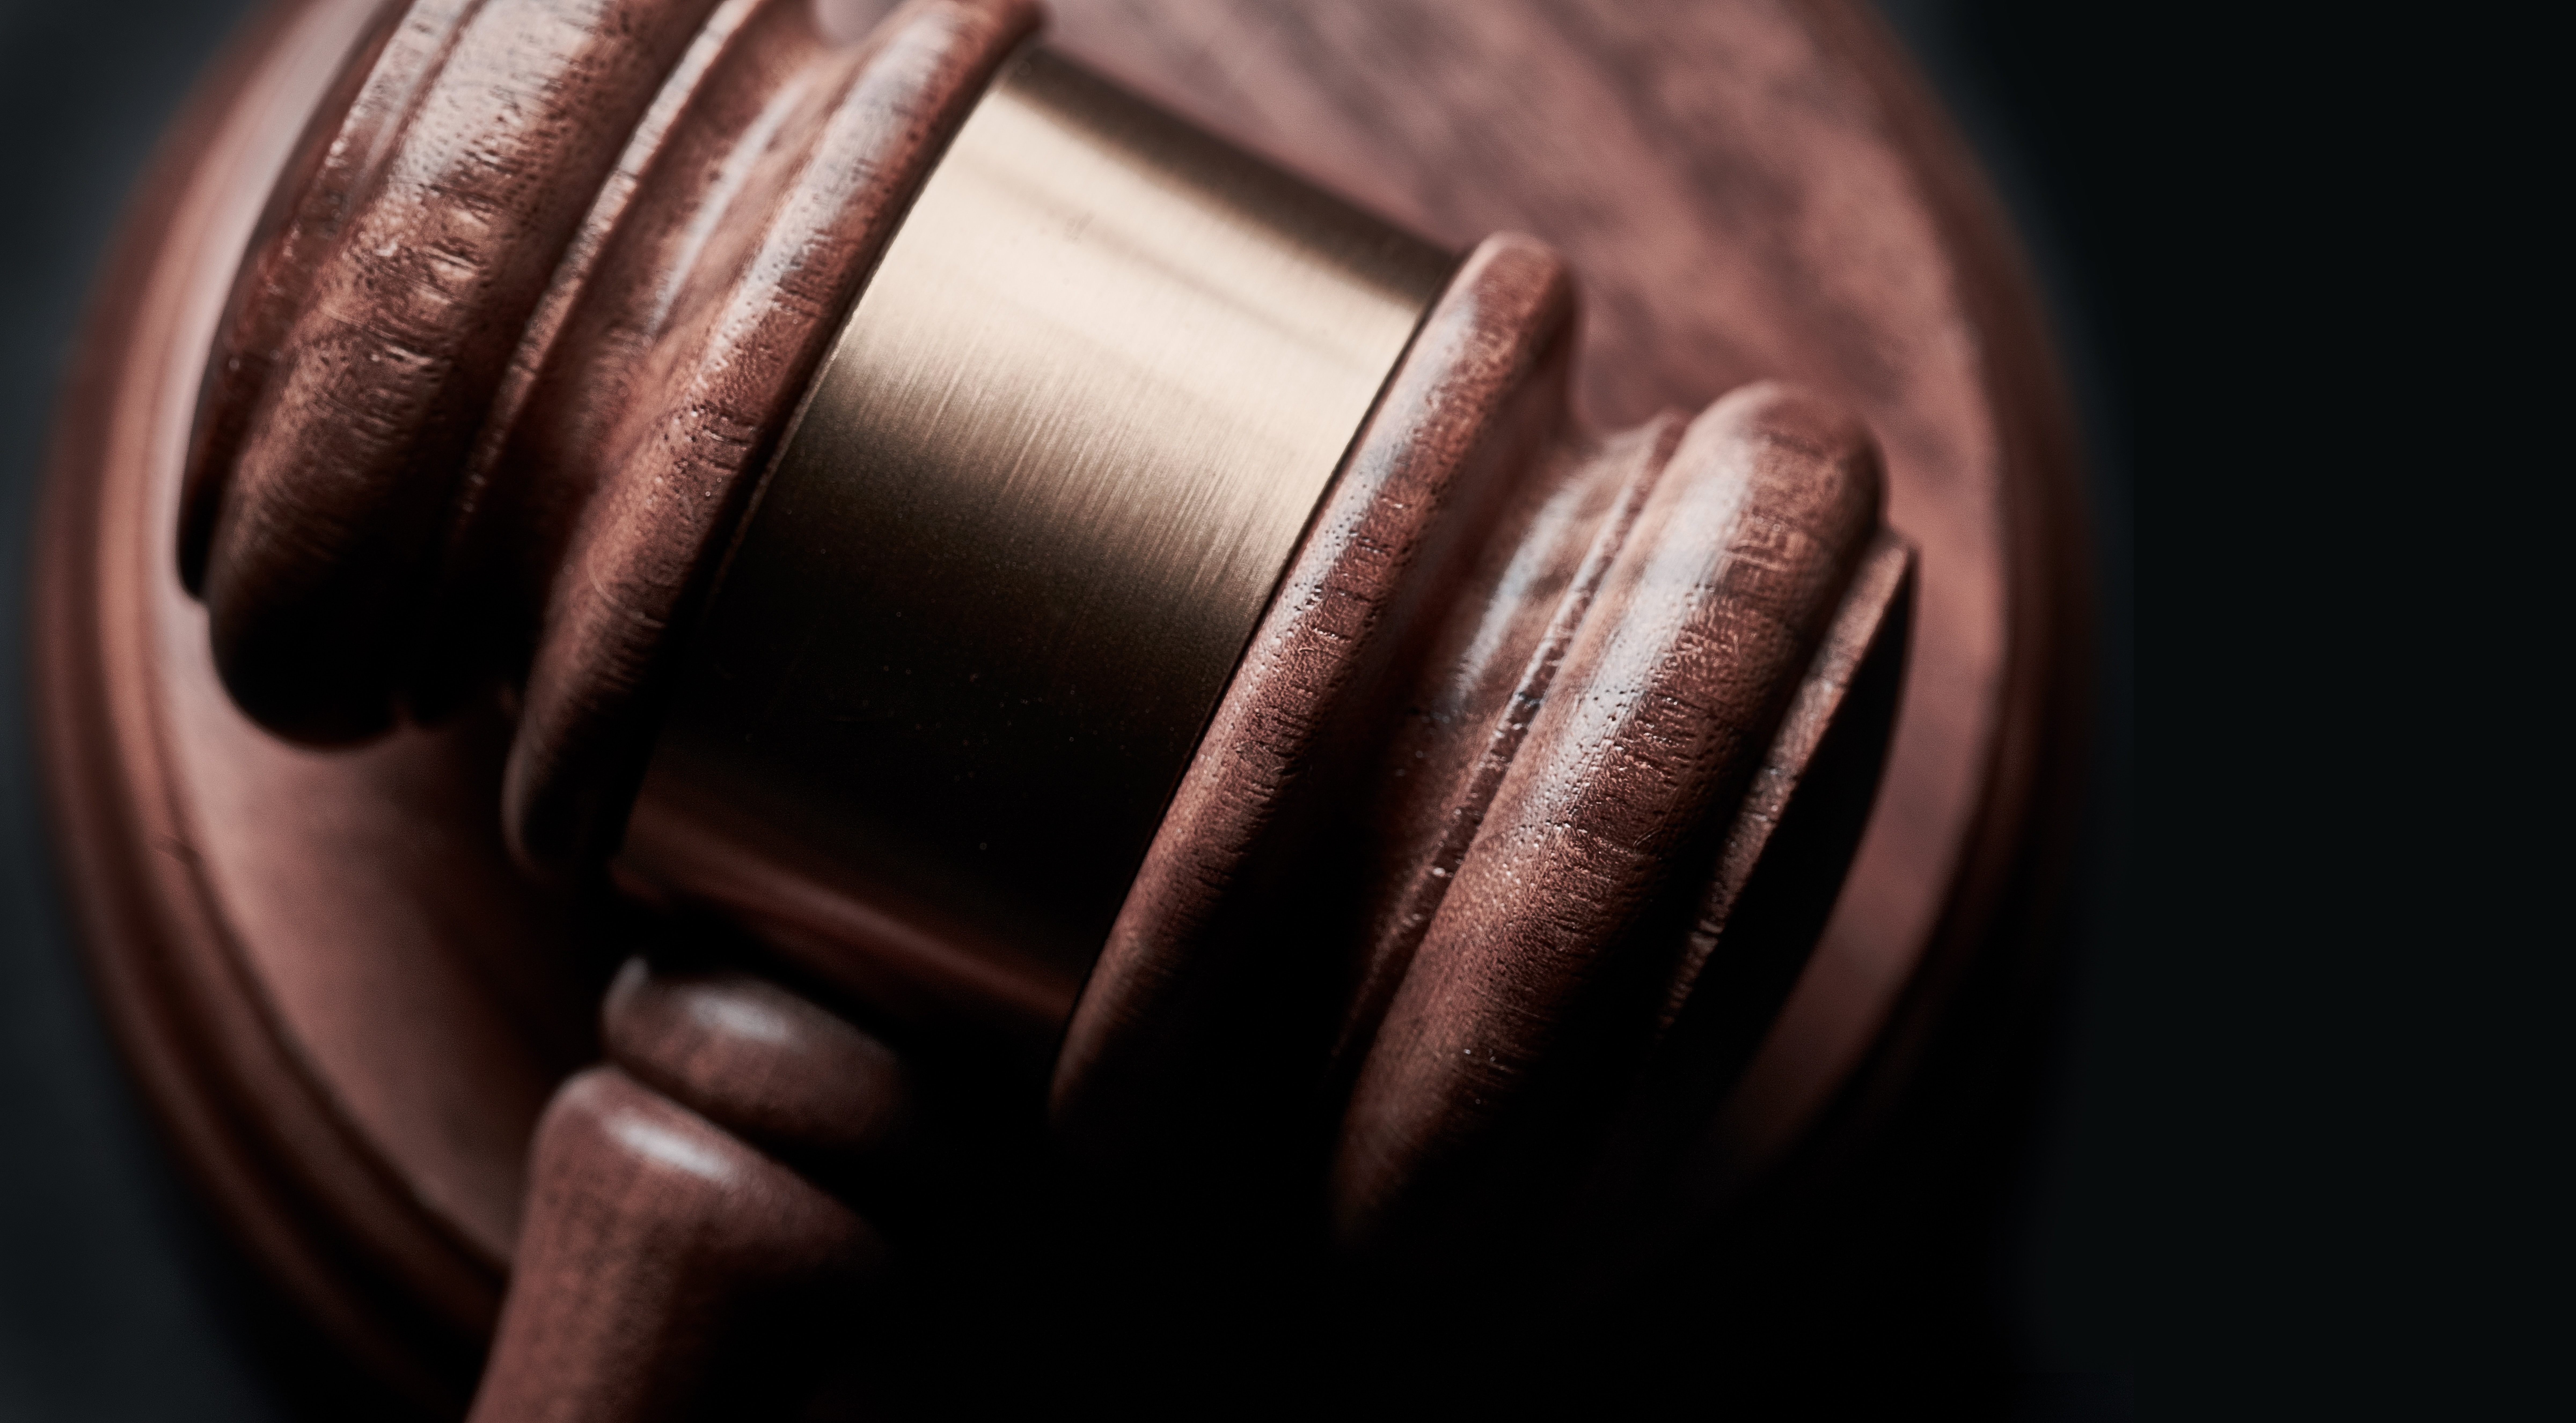 Data Protection & IT Asset Disposal: How To Comply With The Law